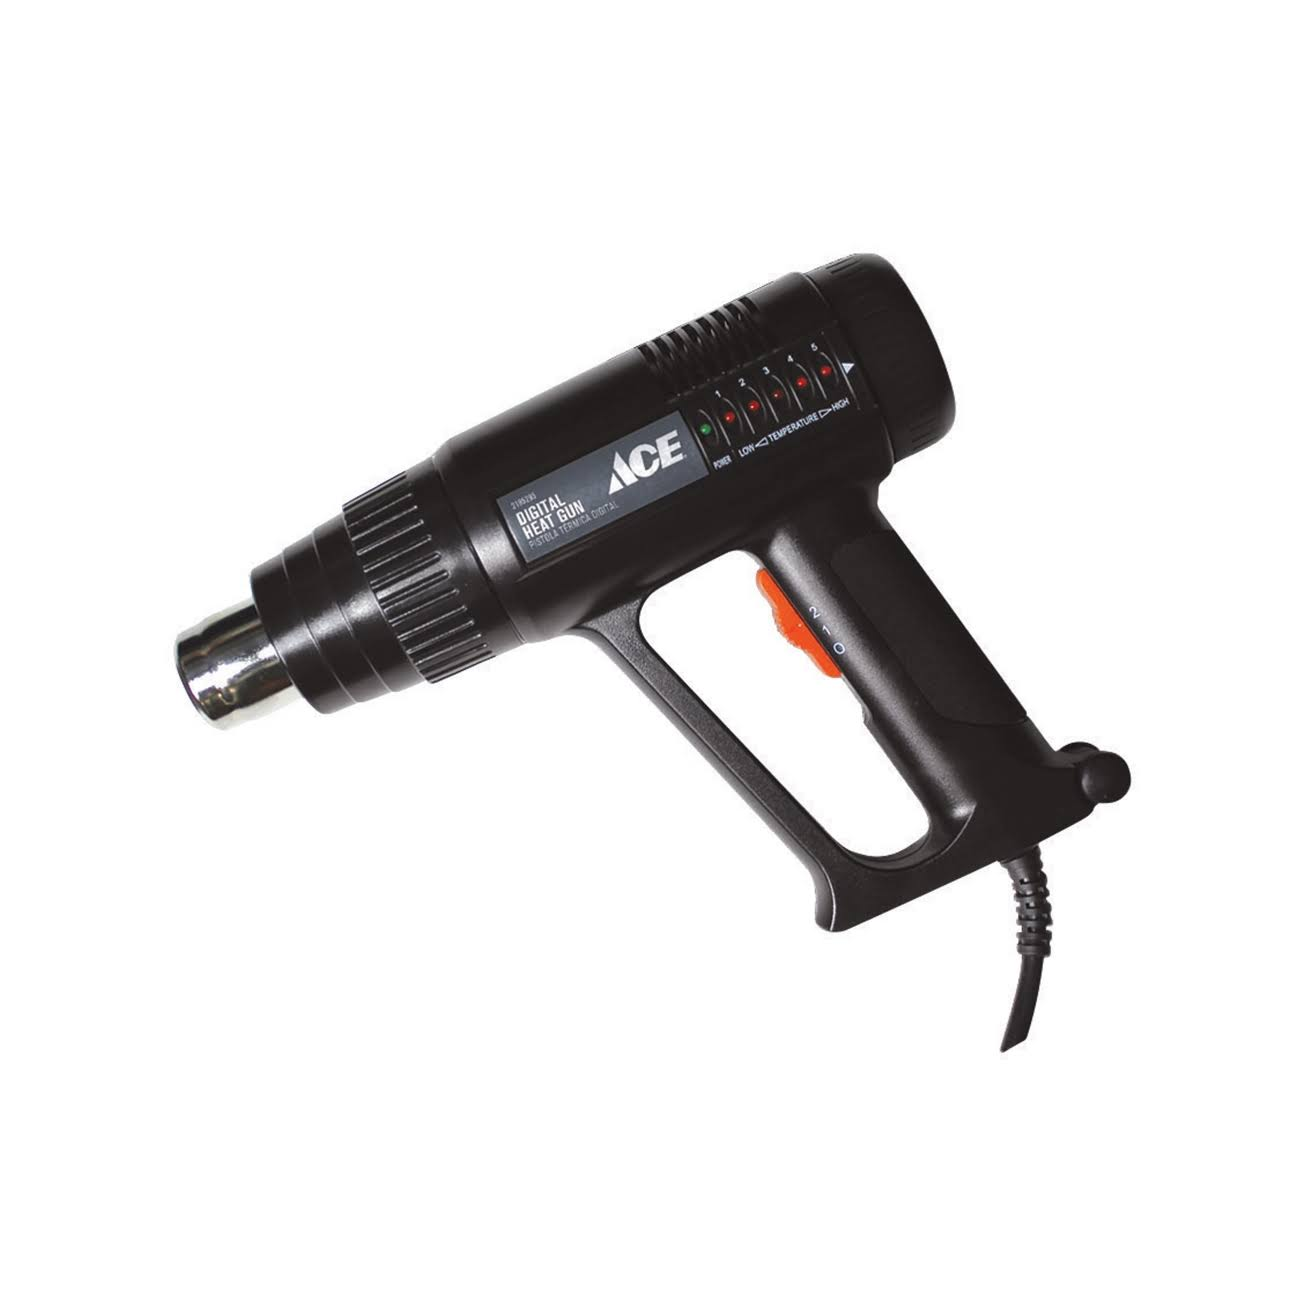 Ace Digital Heat Gun - 1500W